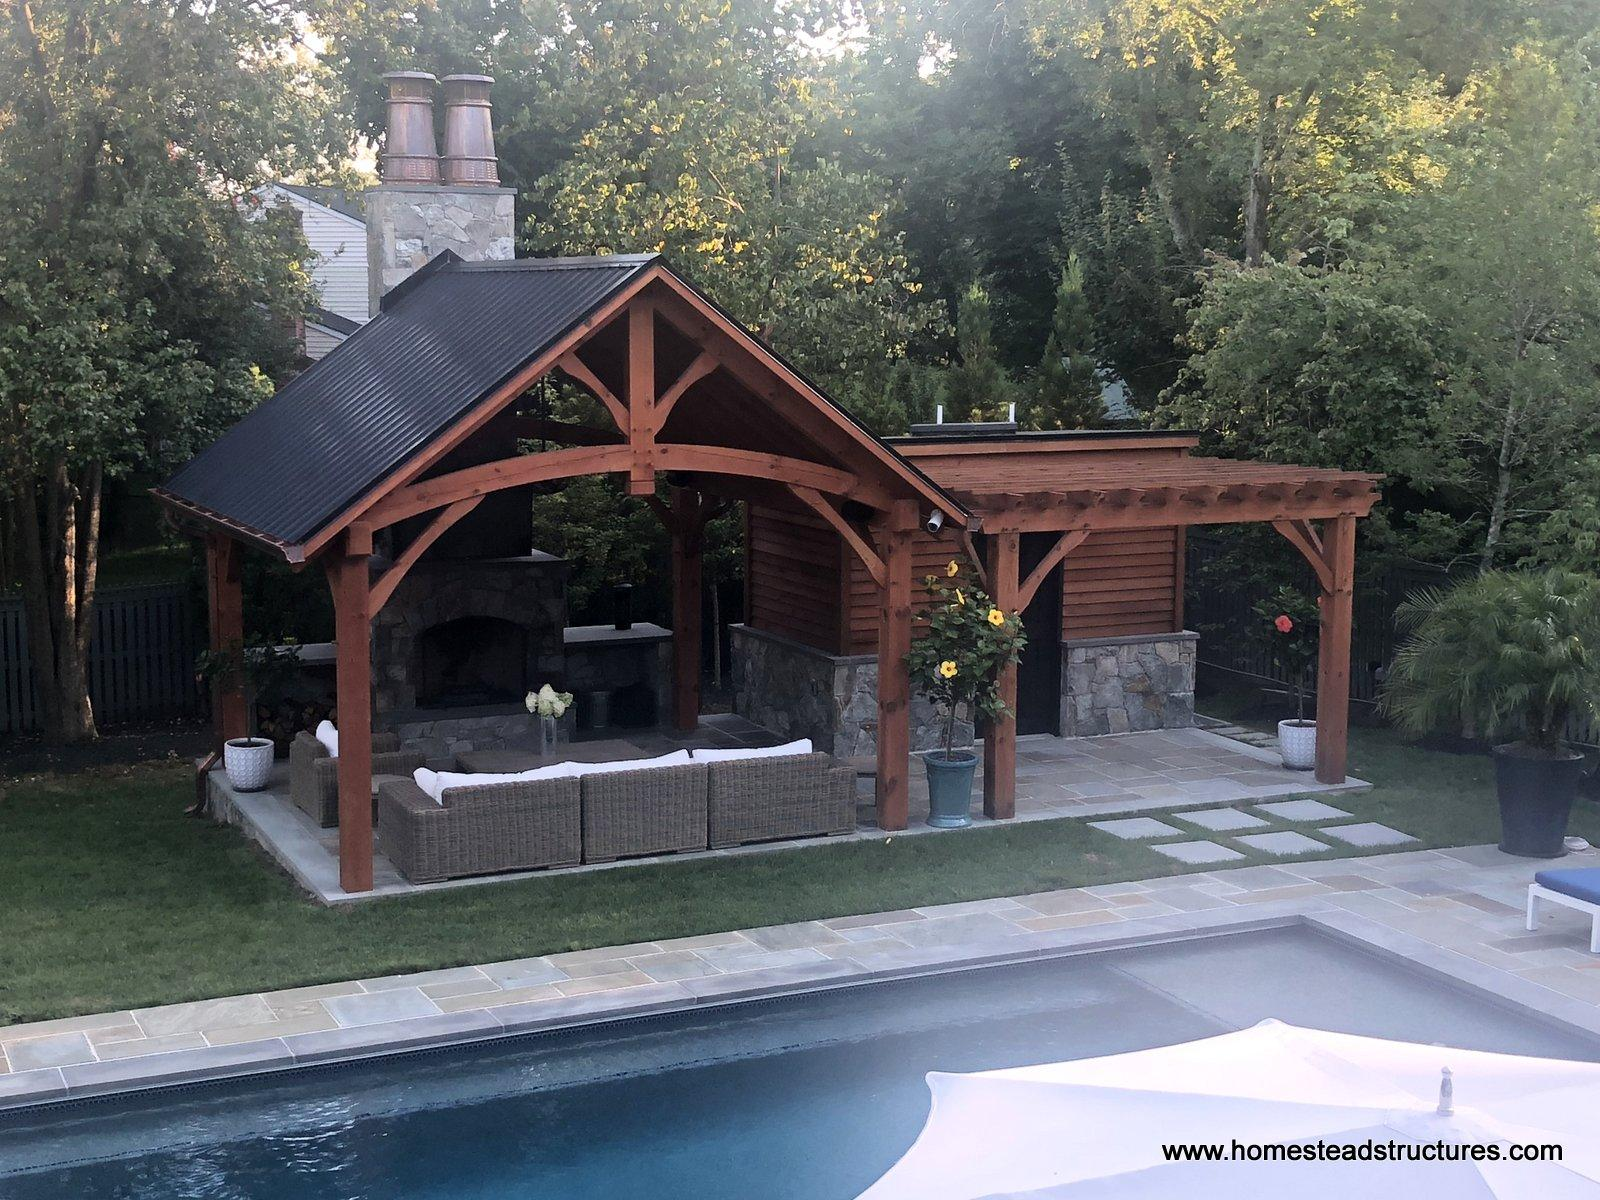 Timber Frame Pavilions Homestead Structures